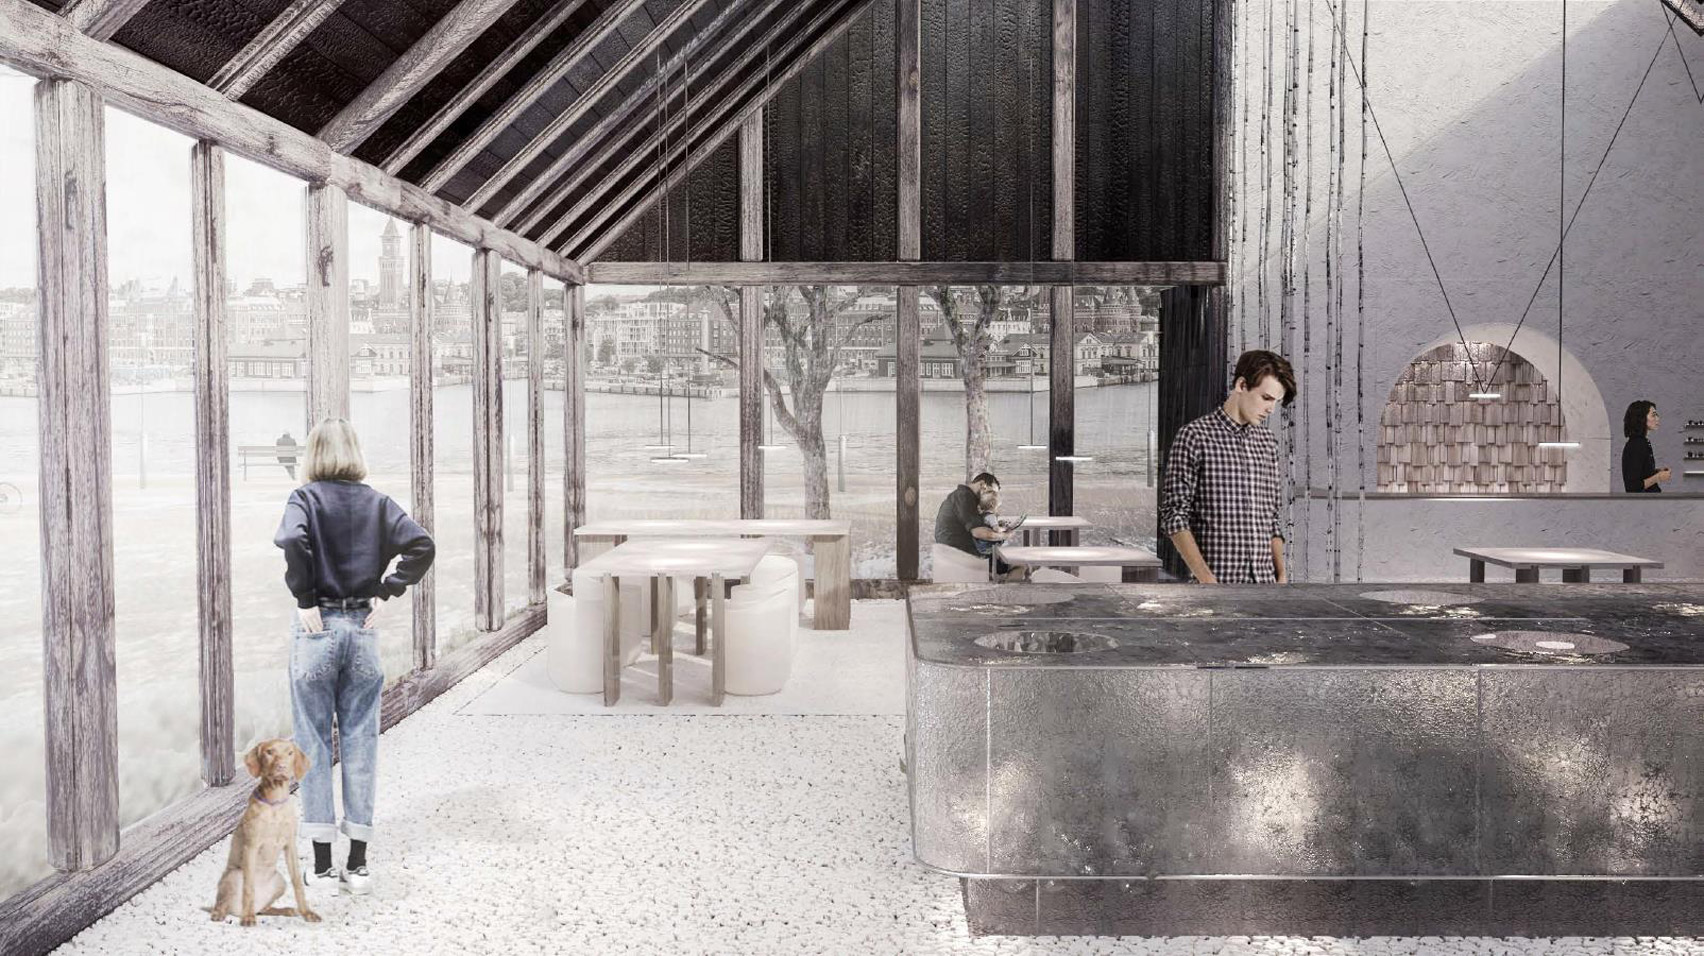 Nord Museum of Memory and Environment by Hedda Klar